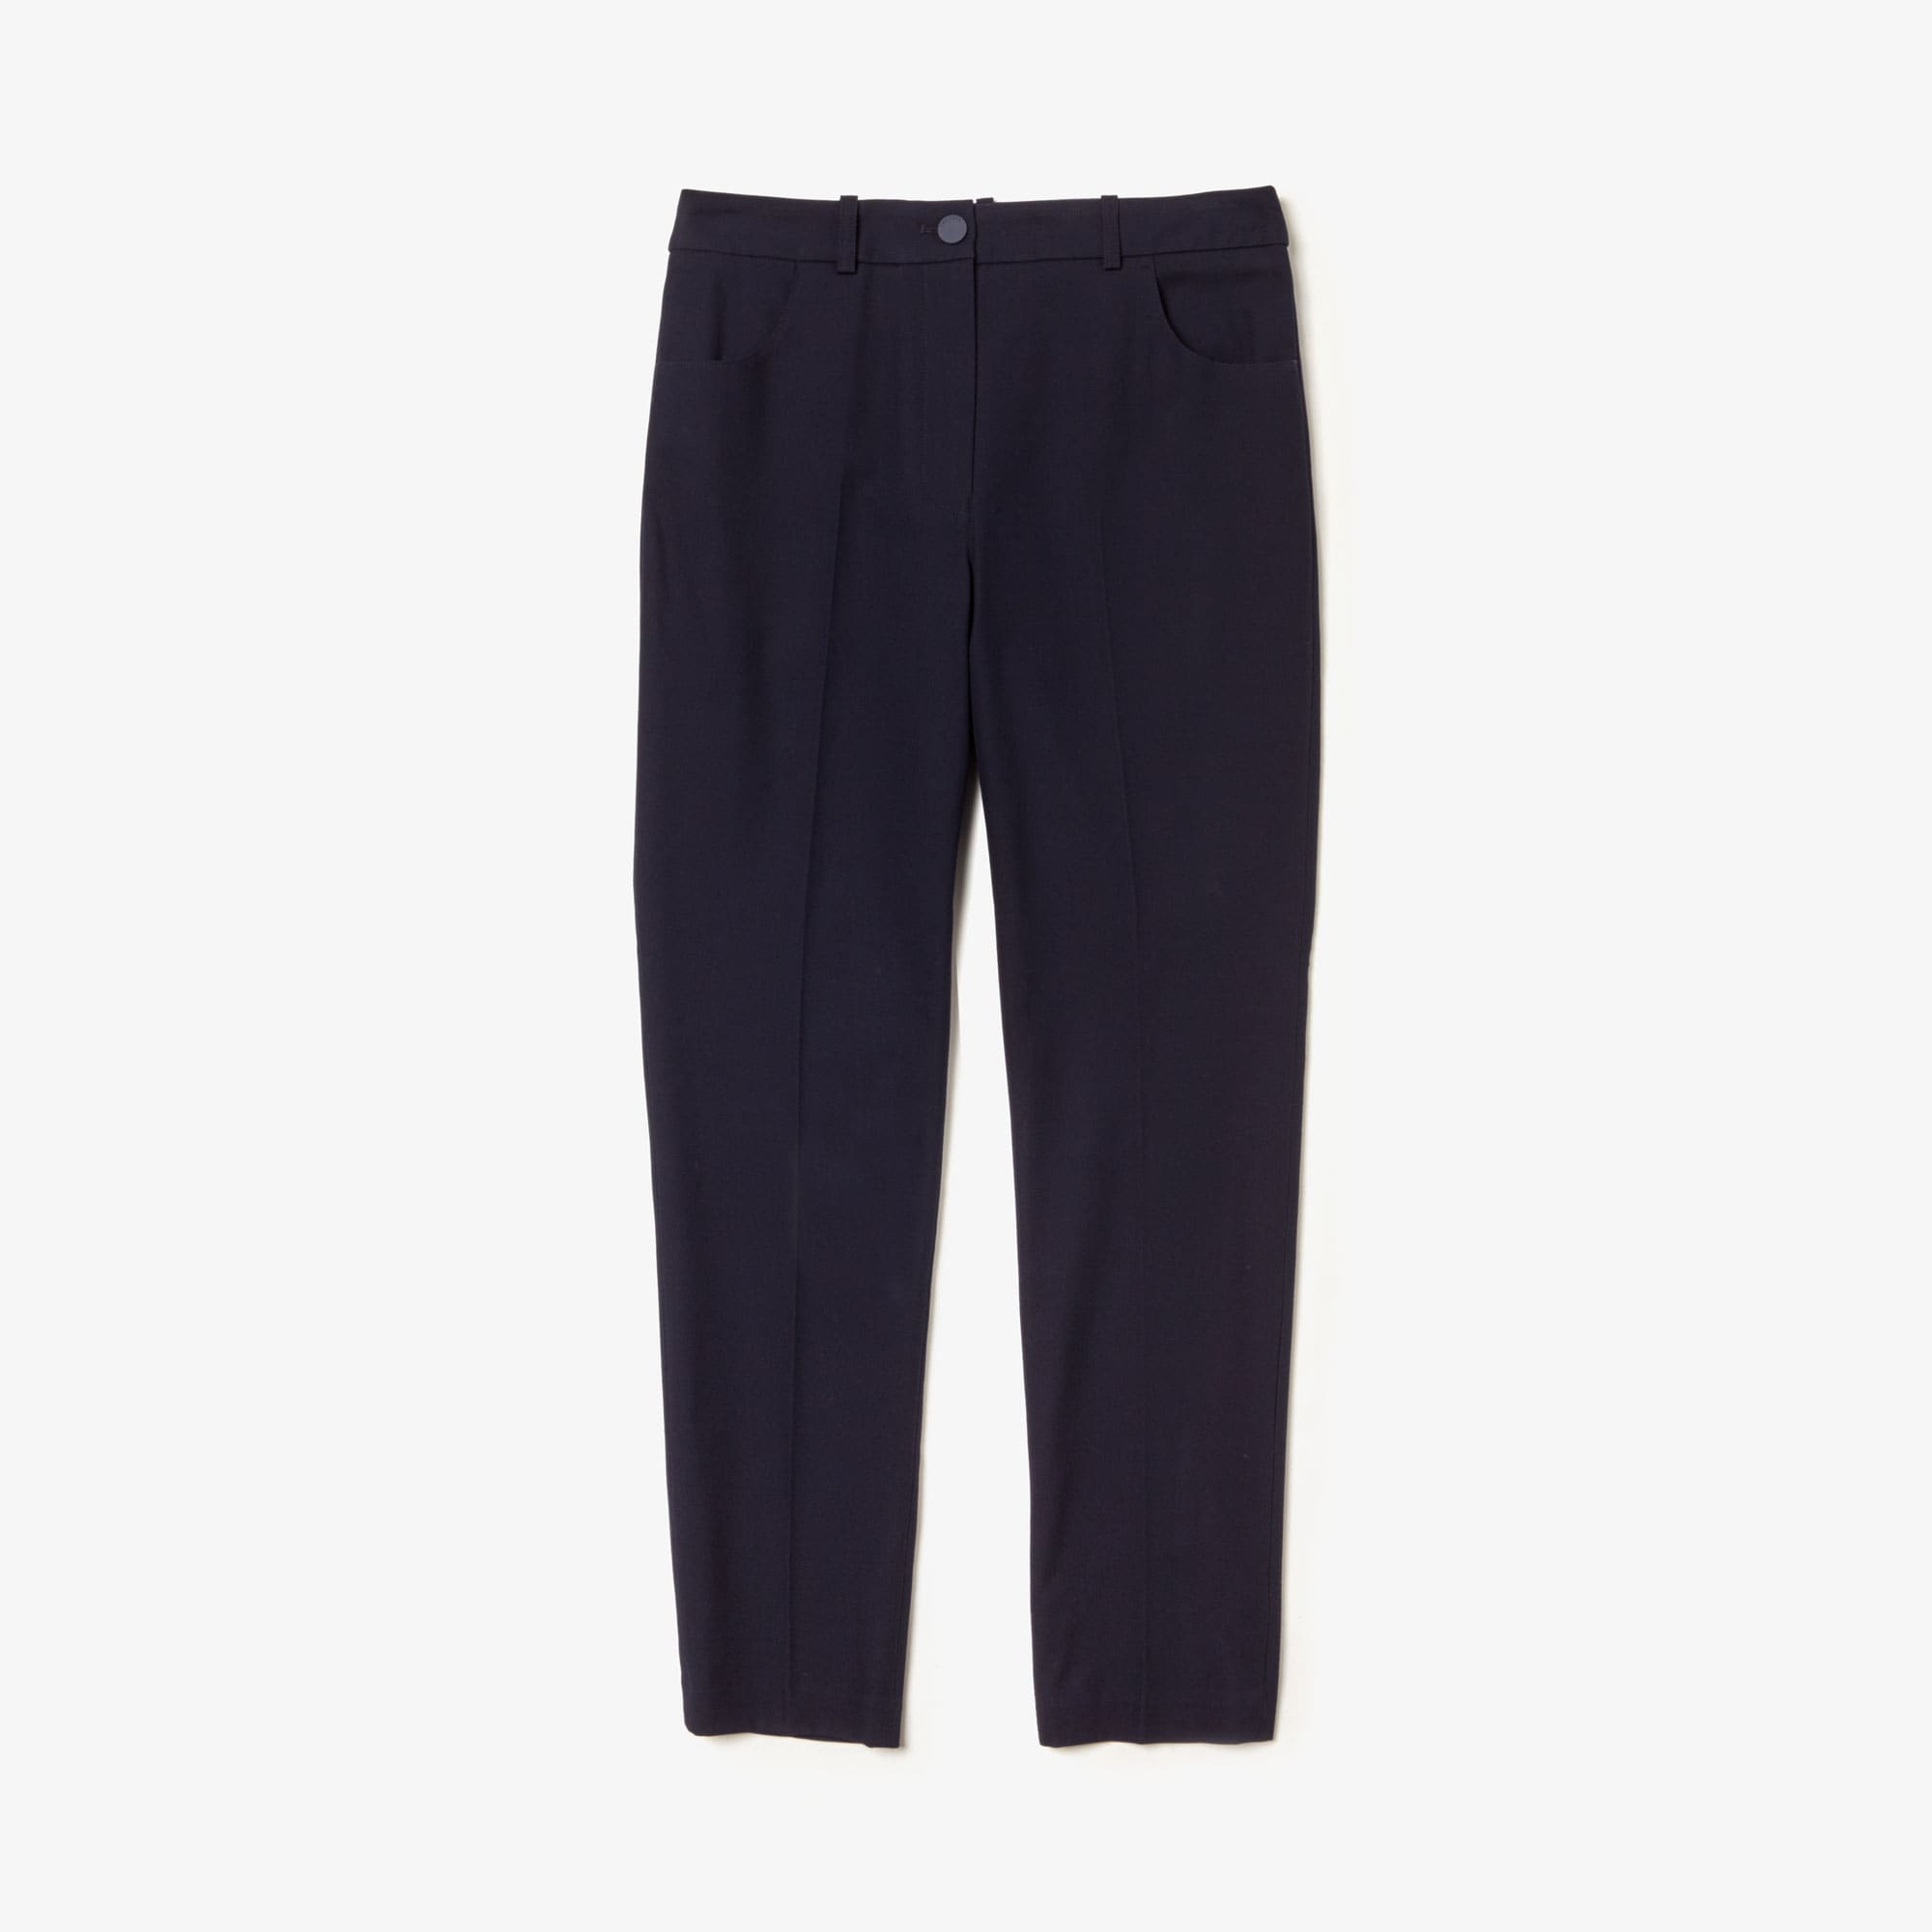 d0a291f7b Pants and Shorts | Women's Clothing | LACOSTE